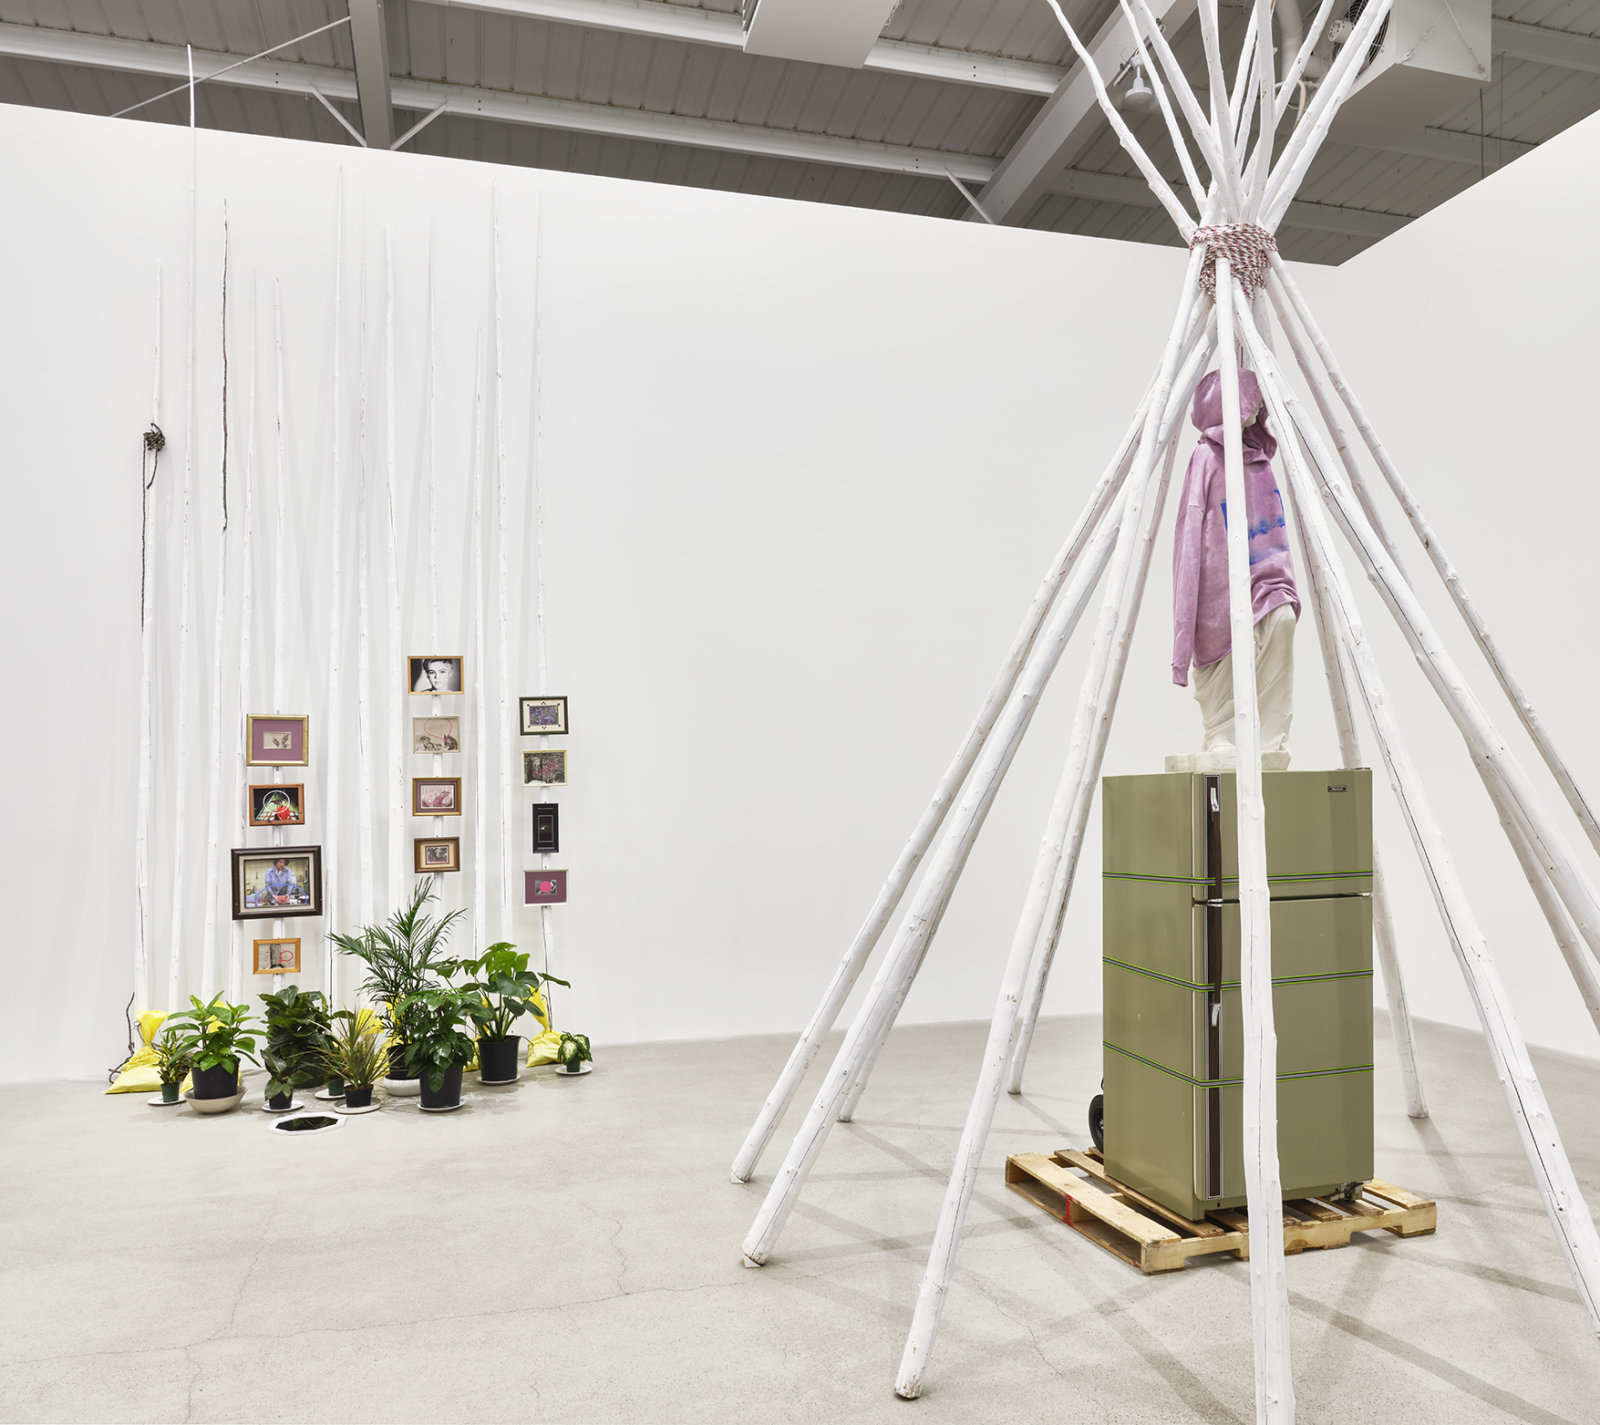 Duane Linklater, installation view, primaryuse, Catriona Jeffries, Vancouver, 2020 by Duane Linklater